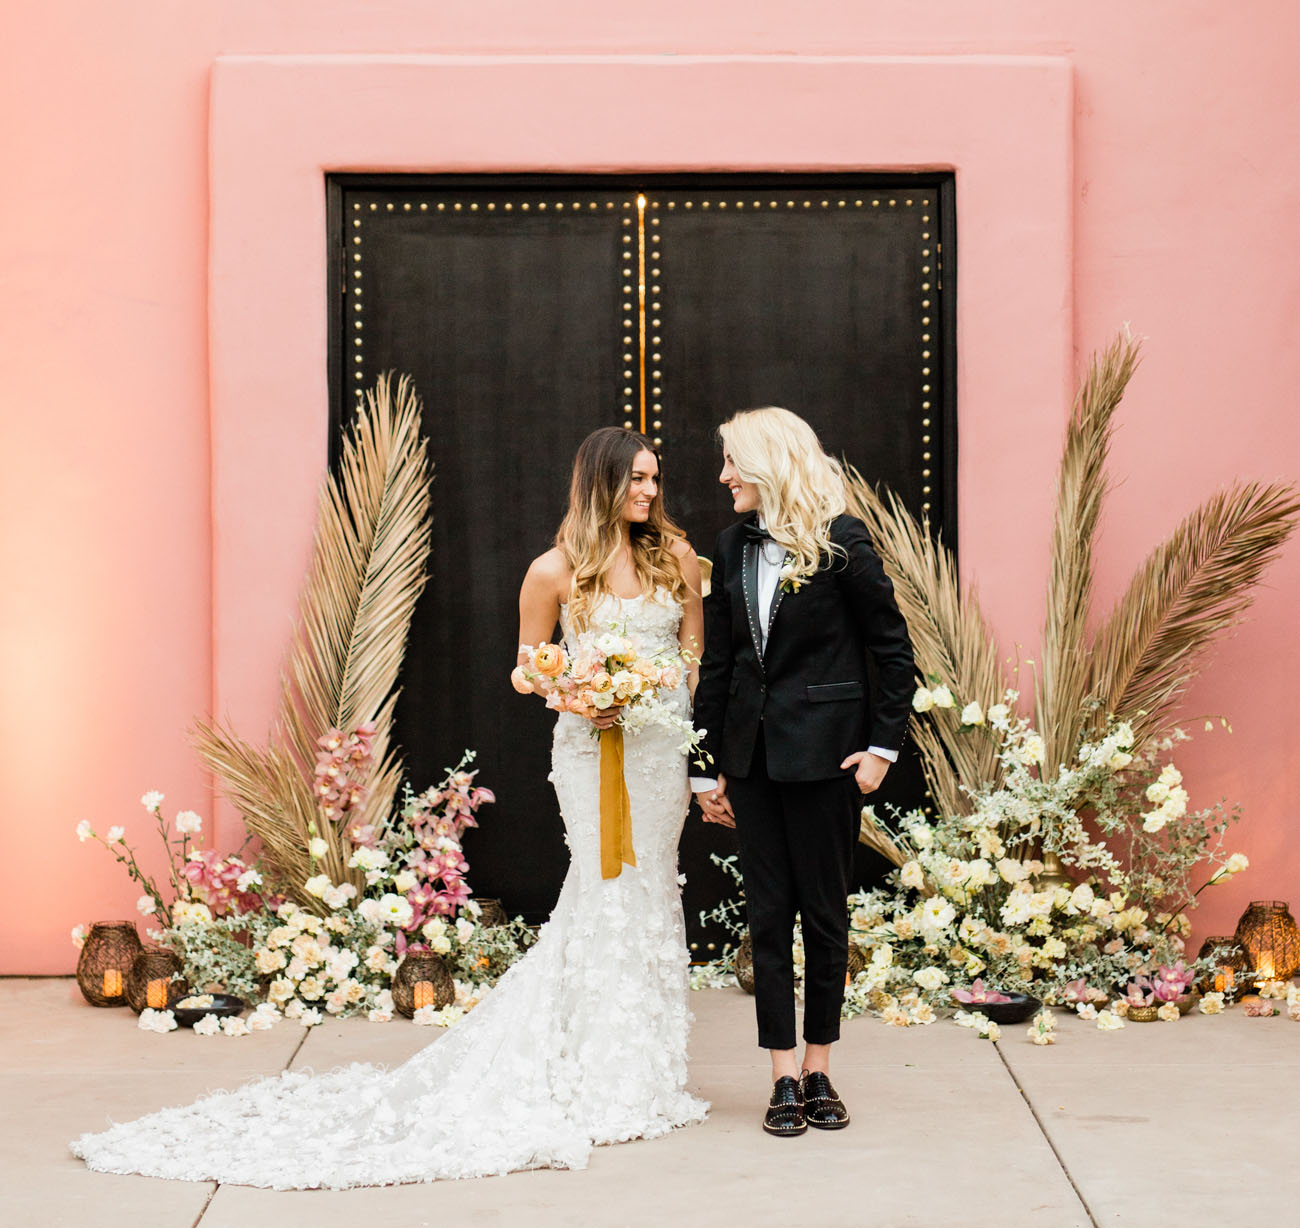 This wedding shoot was done with Moroccan desert meets modern theme and touches of pink and bold black